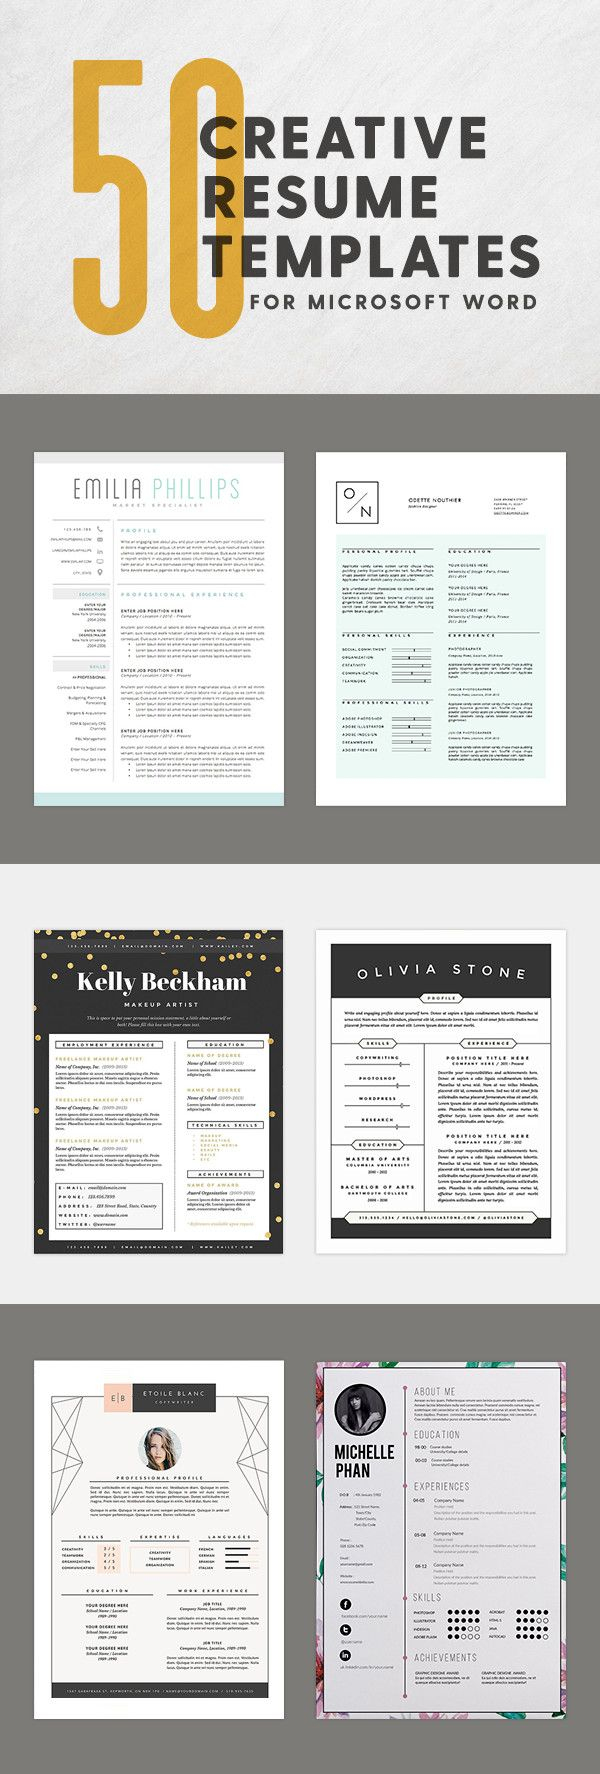 50 creative resume templates you wont believe are microsoft word - Resume Microsoft Word Template